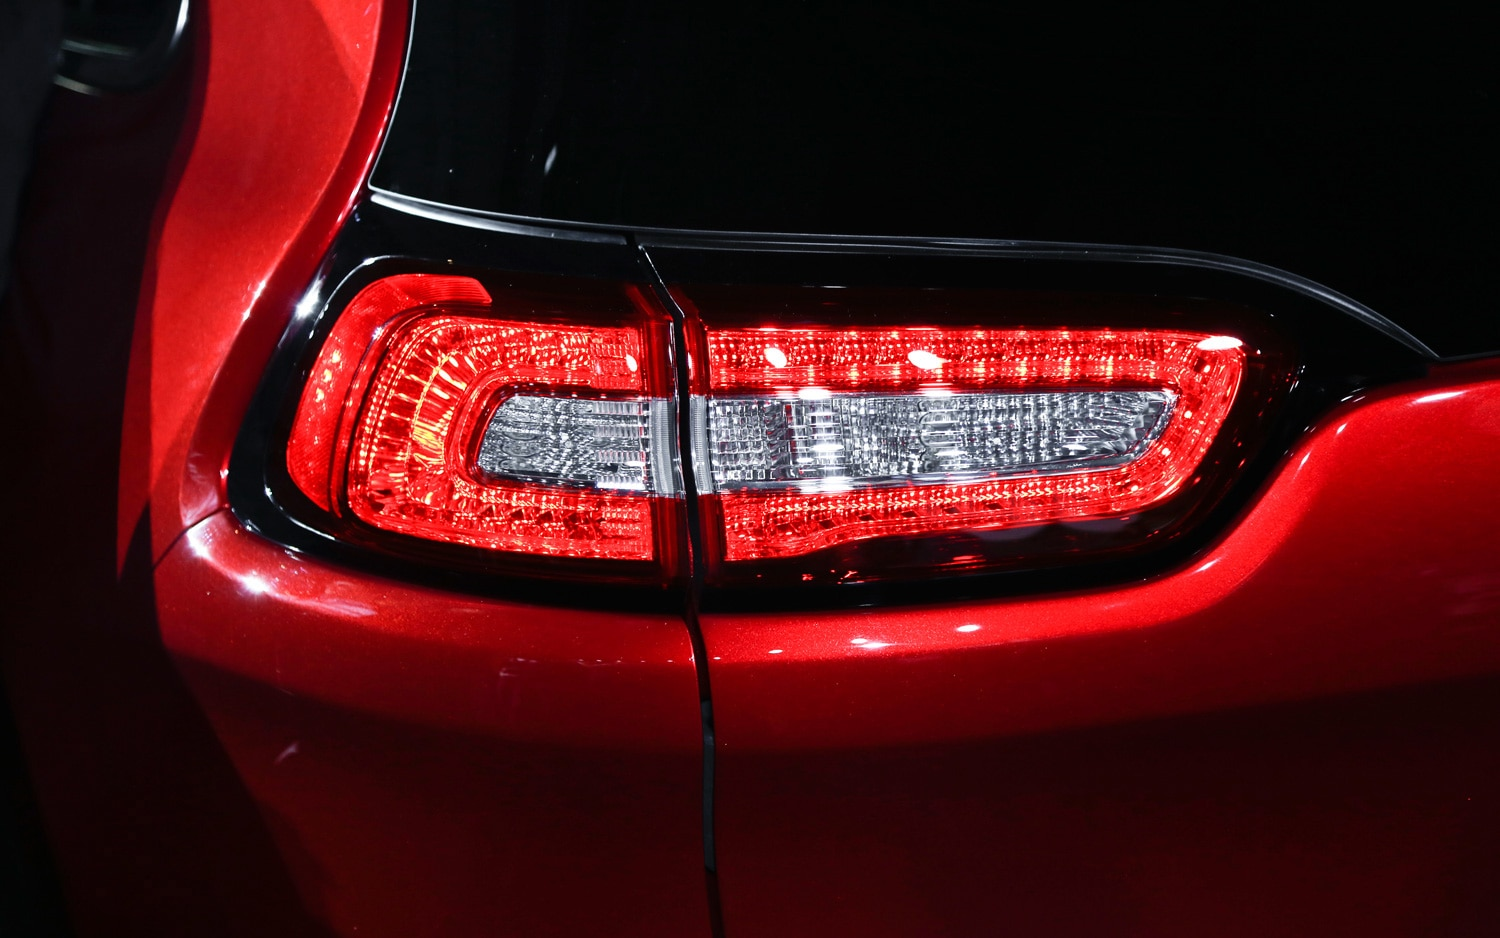 2014 Jeep Cherokee Limited taillight